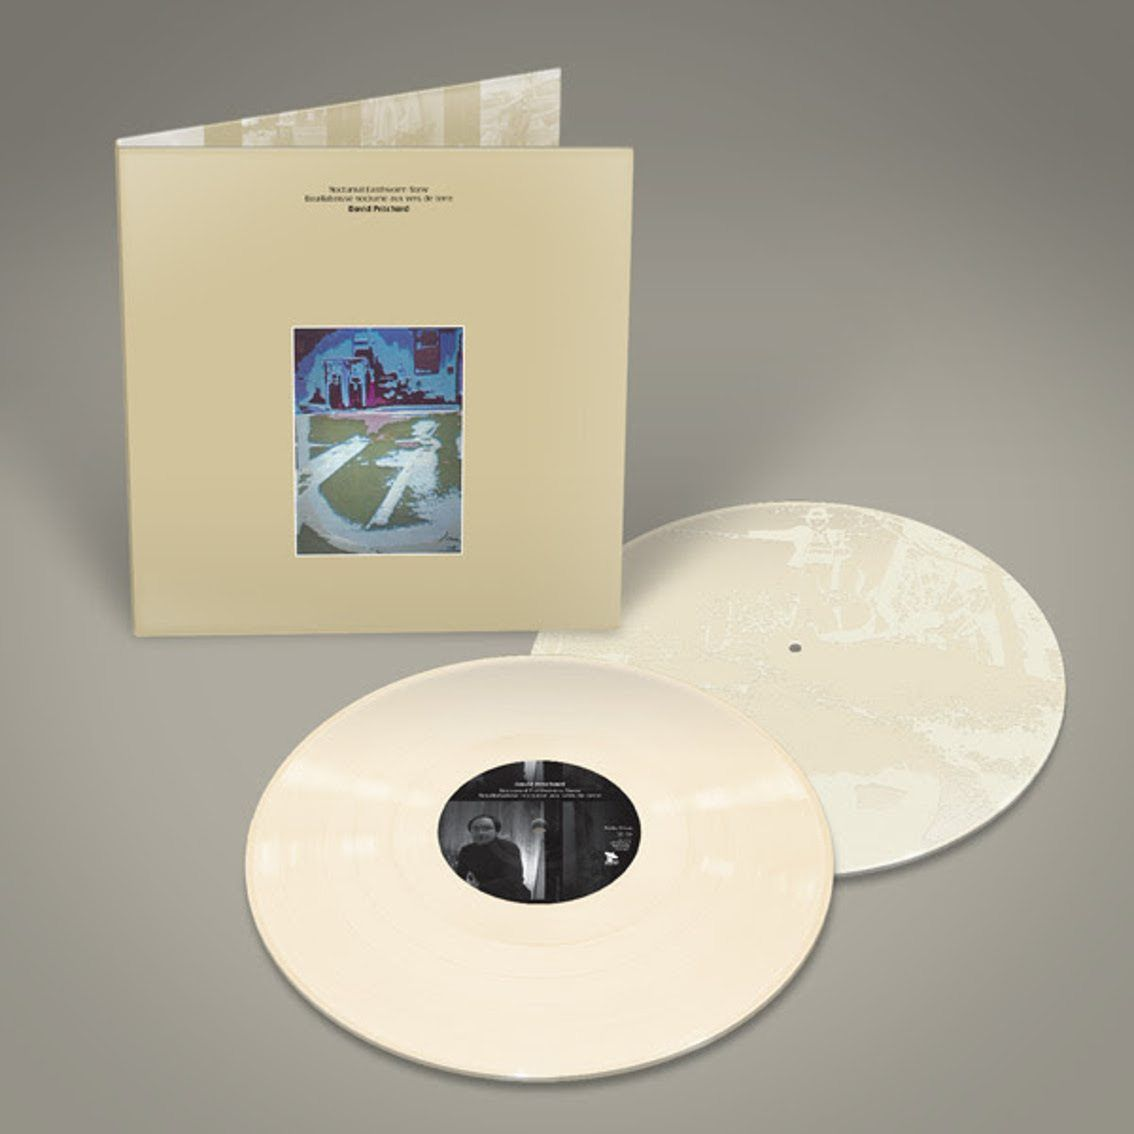 Artoffact Records reissues underground classic 'Nocturnal Earthworm Stew' by David Pritchard on CD, 2LP (in 2 vinyl versions)